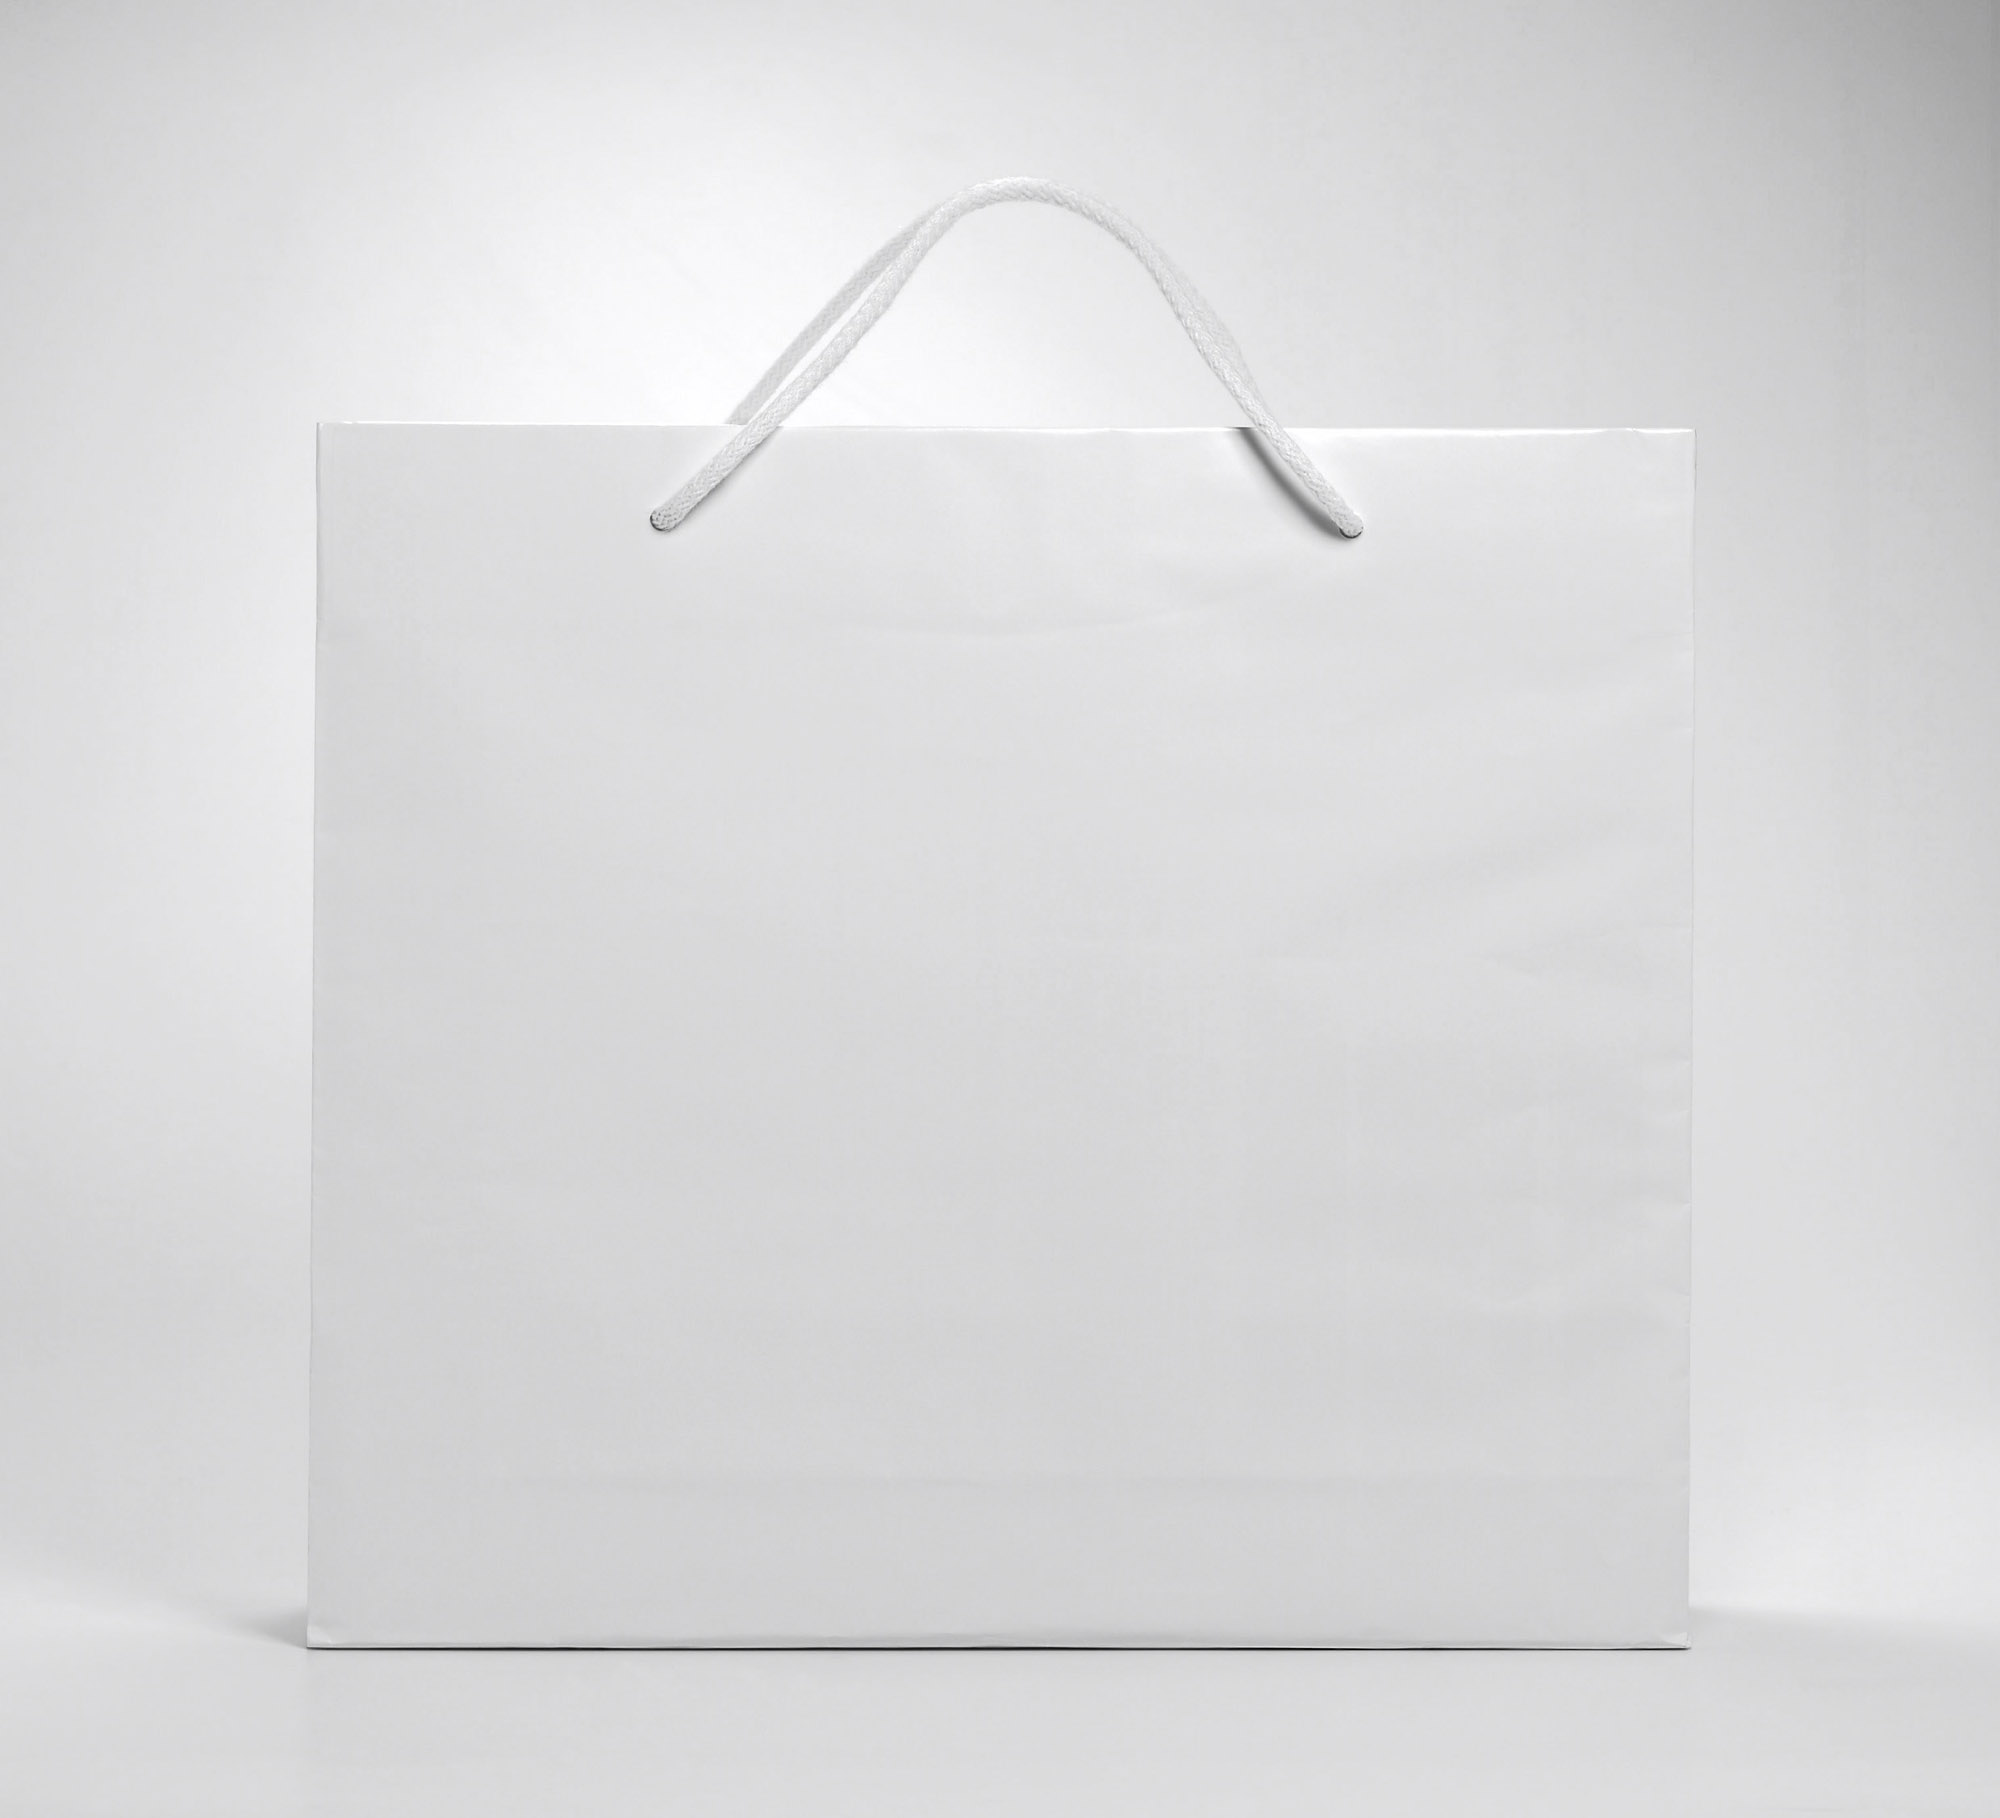 Blank shopping bags 211